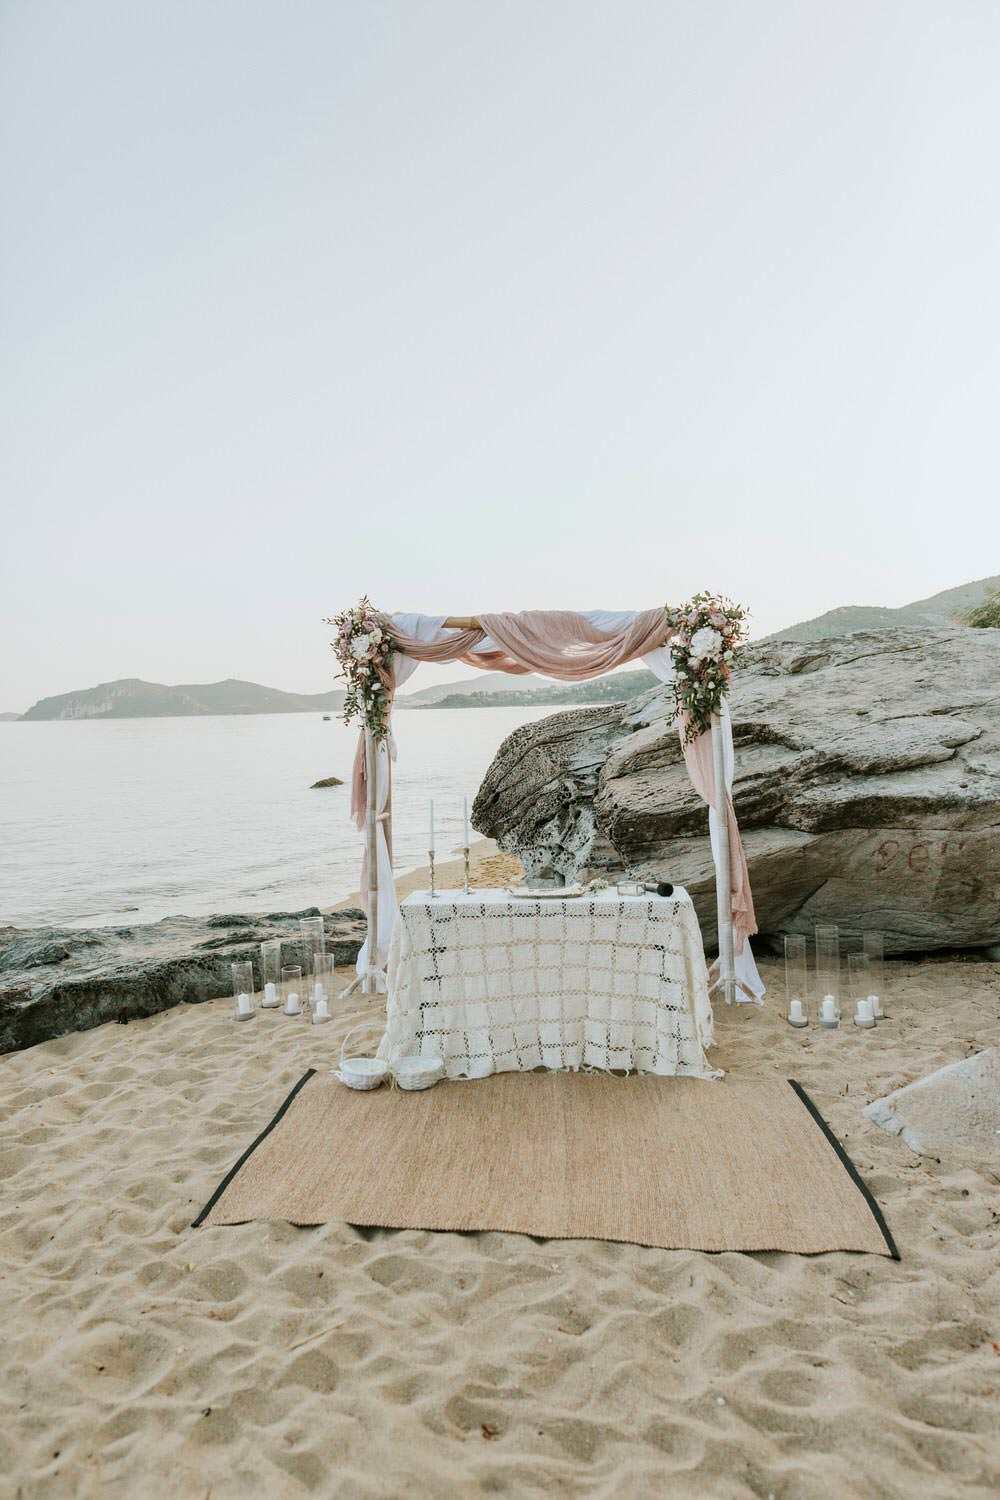 Ceremony Backdrop Aisle Fabric Flowers Arch Bohemian Beach Greece Destination Wedding Lighthouse Photography